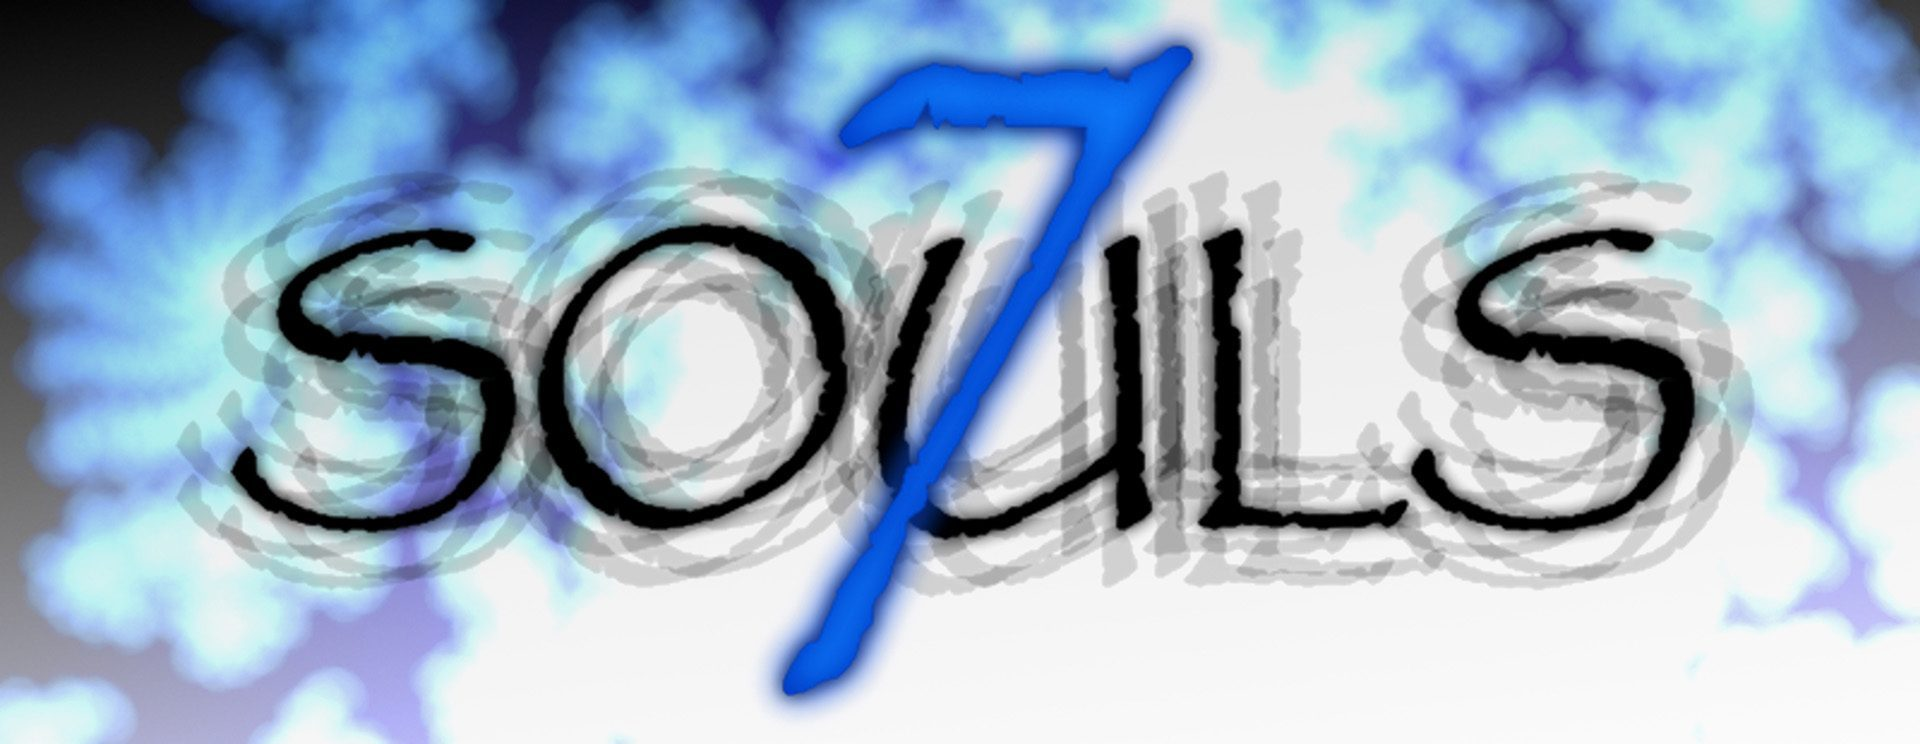 cropped-cropped-banner_small-2-1.jpg